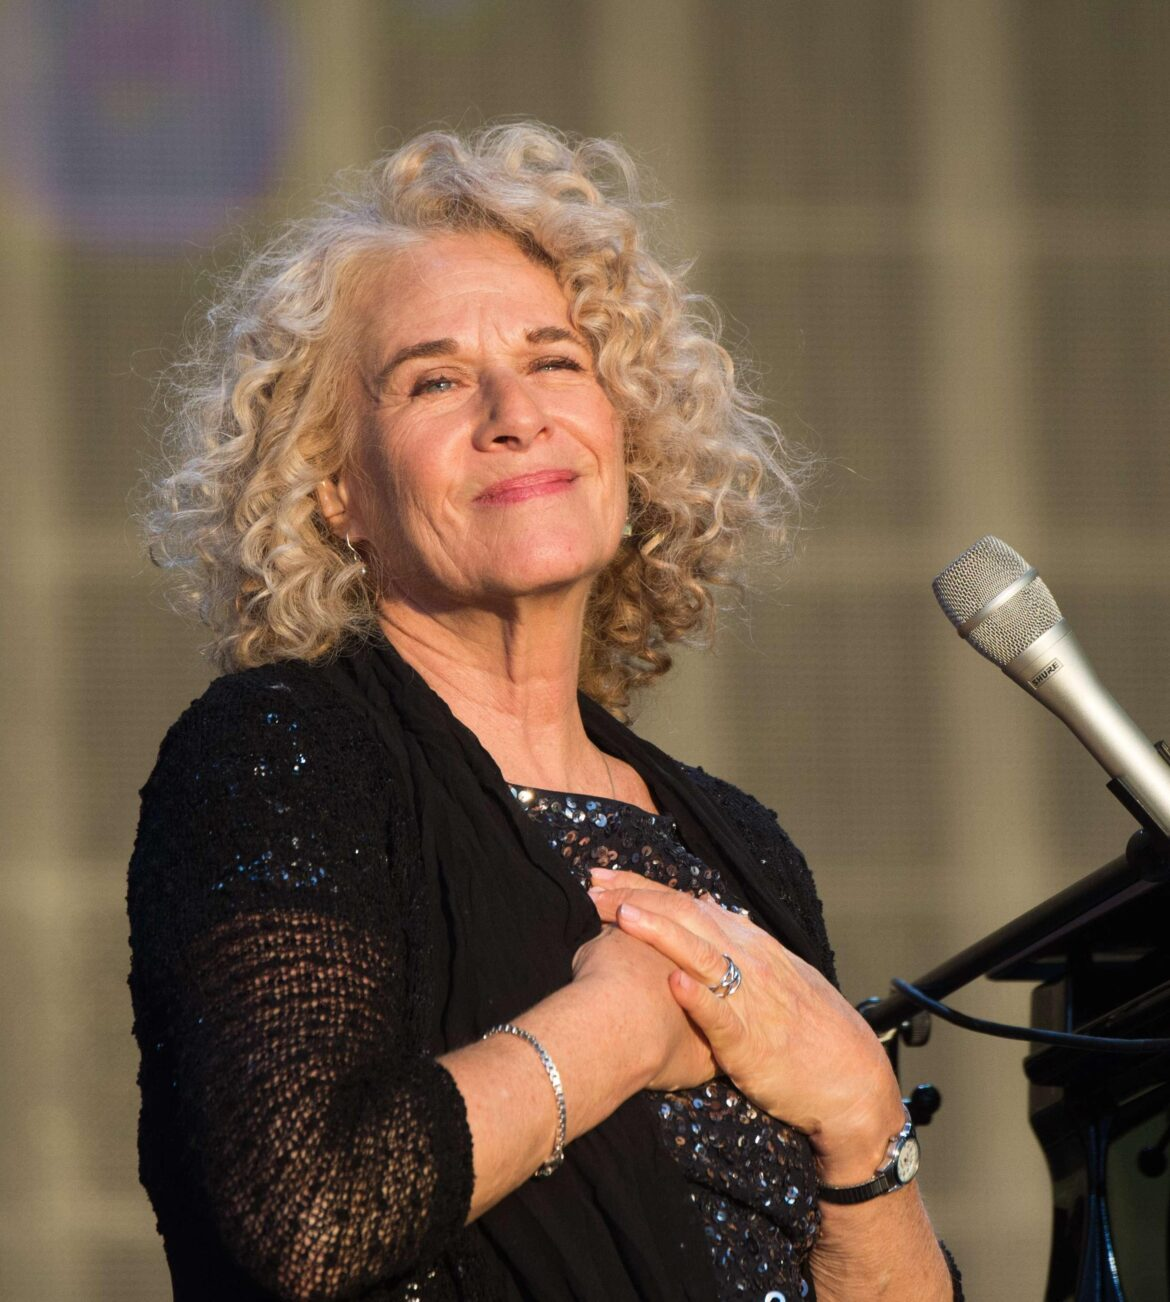 Celebrating Women's Live History: Carole King Performs 'Tapestry' Before Nearly 60,000 At British Summer Time